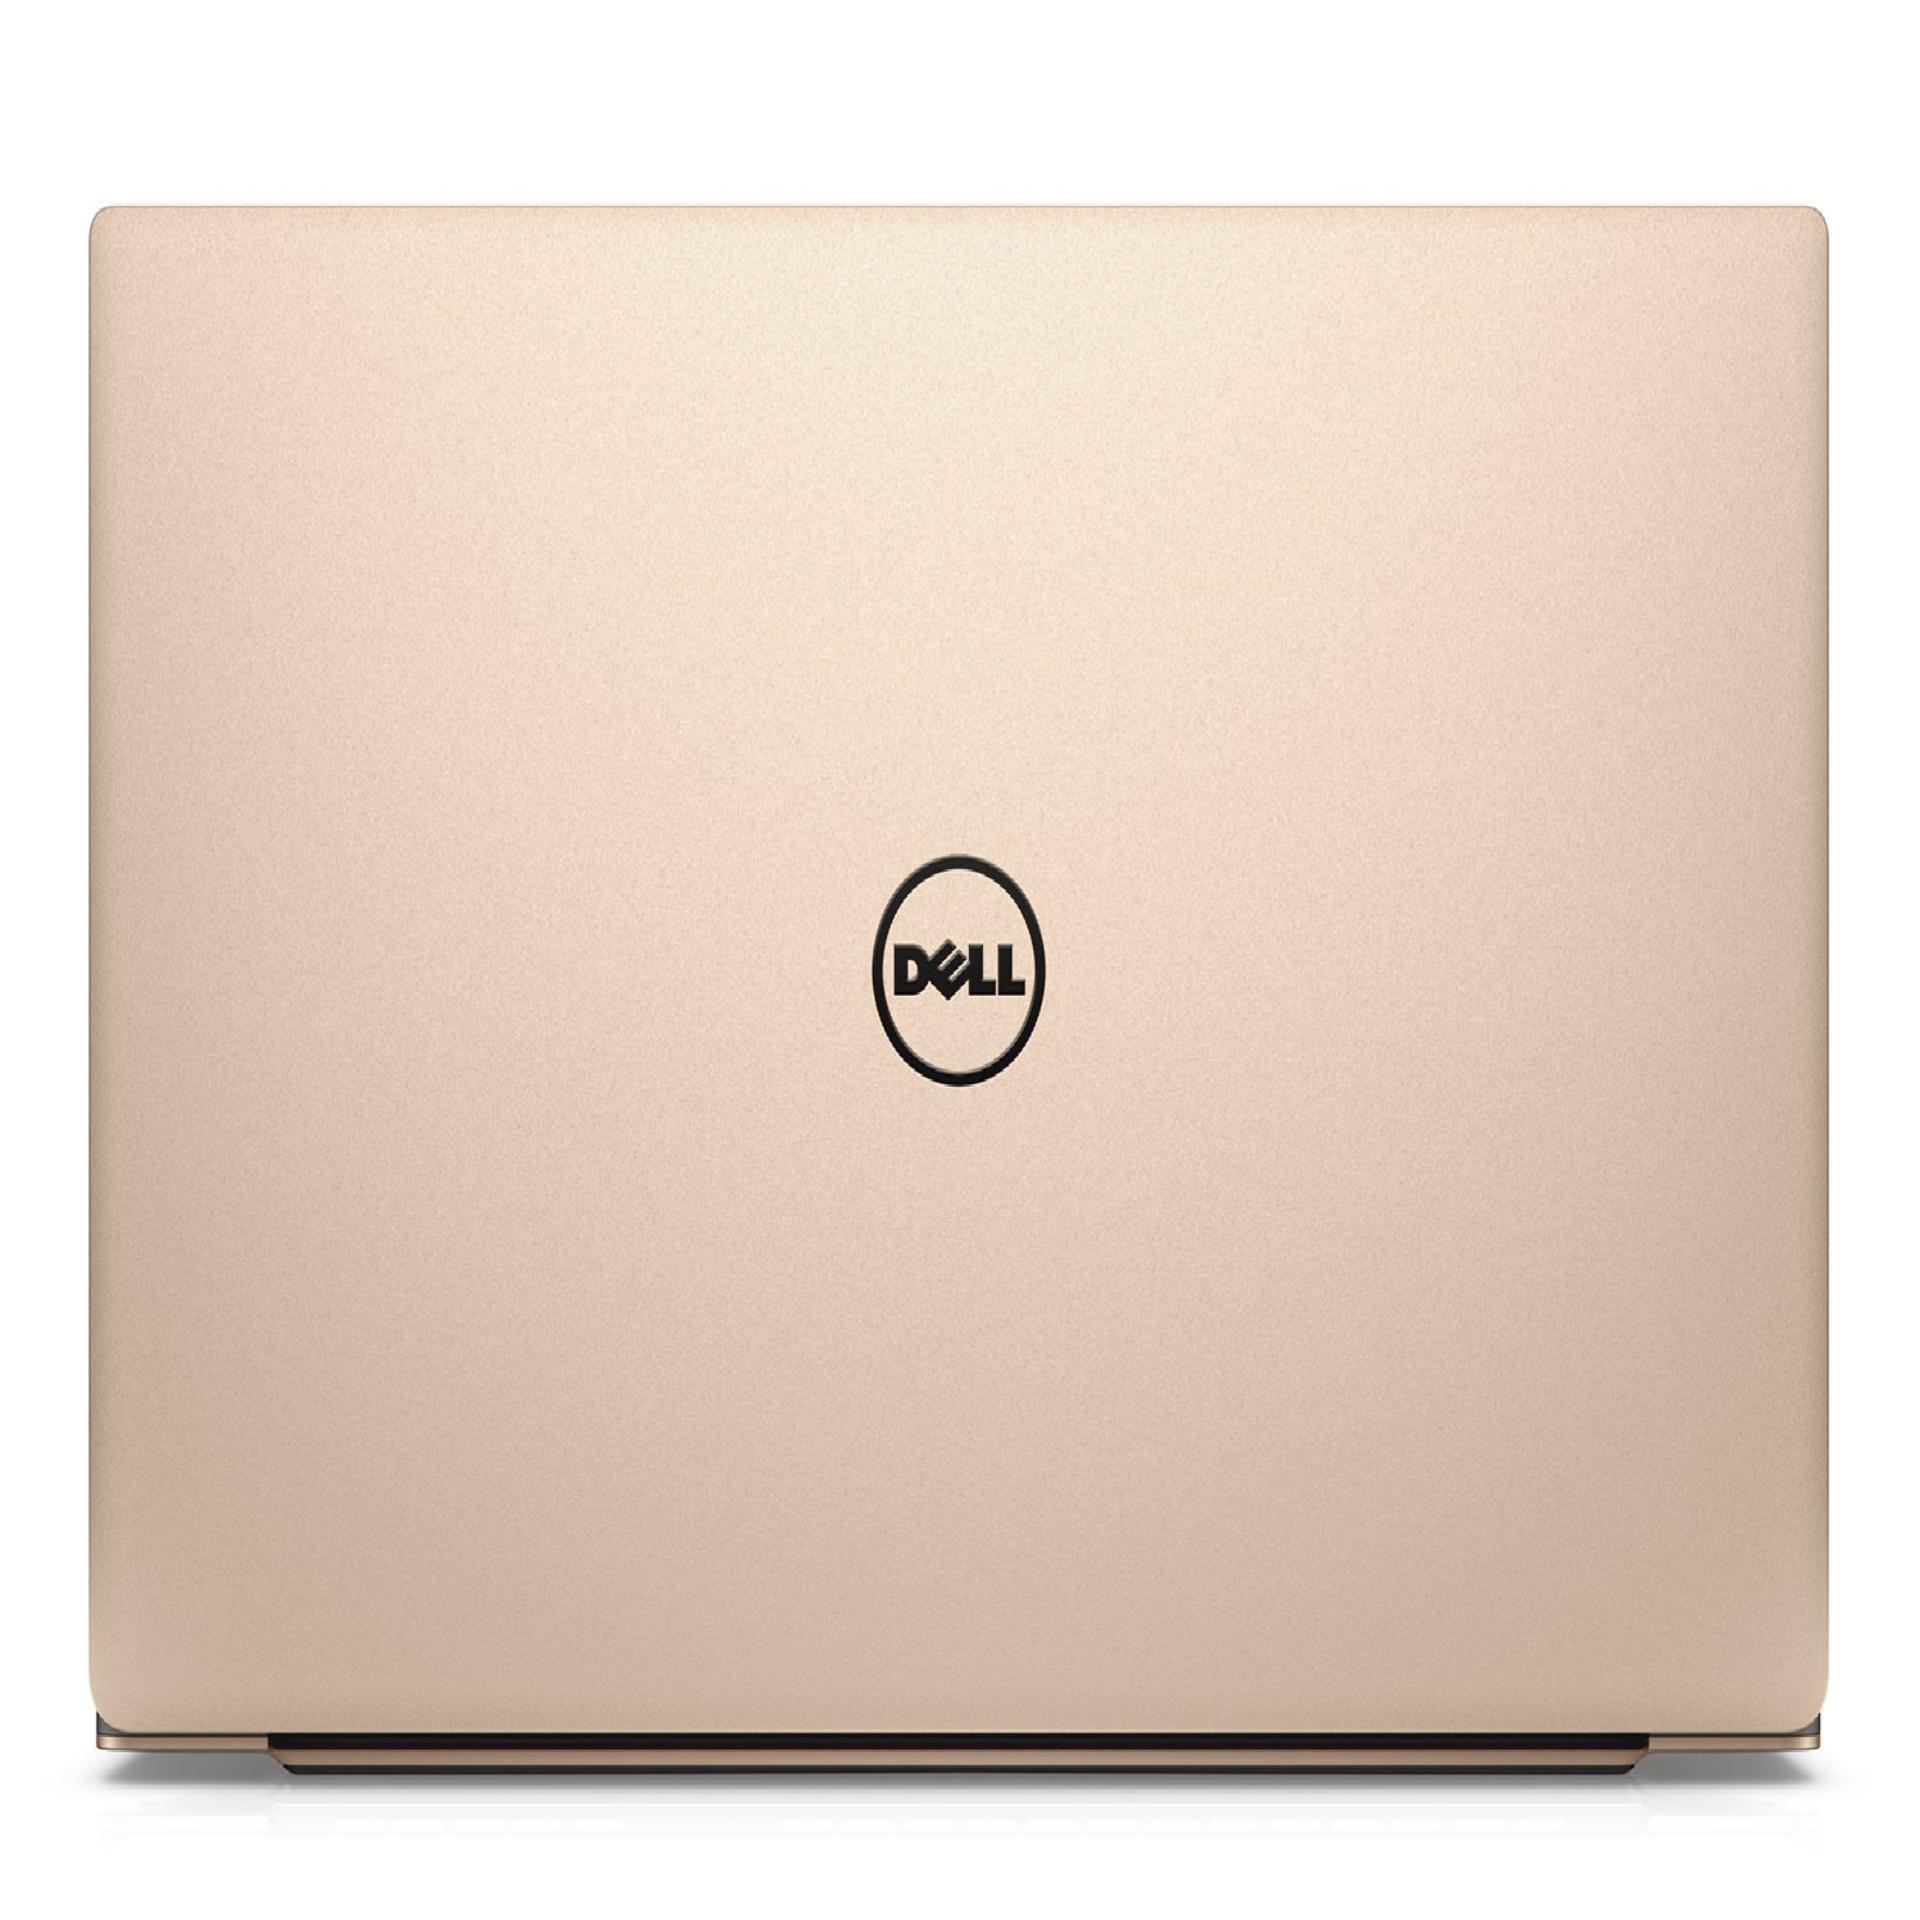 Dell 9360-85582SGL [Gold] (Intel i7, 8GB RAM, 256 SSD FHD)